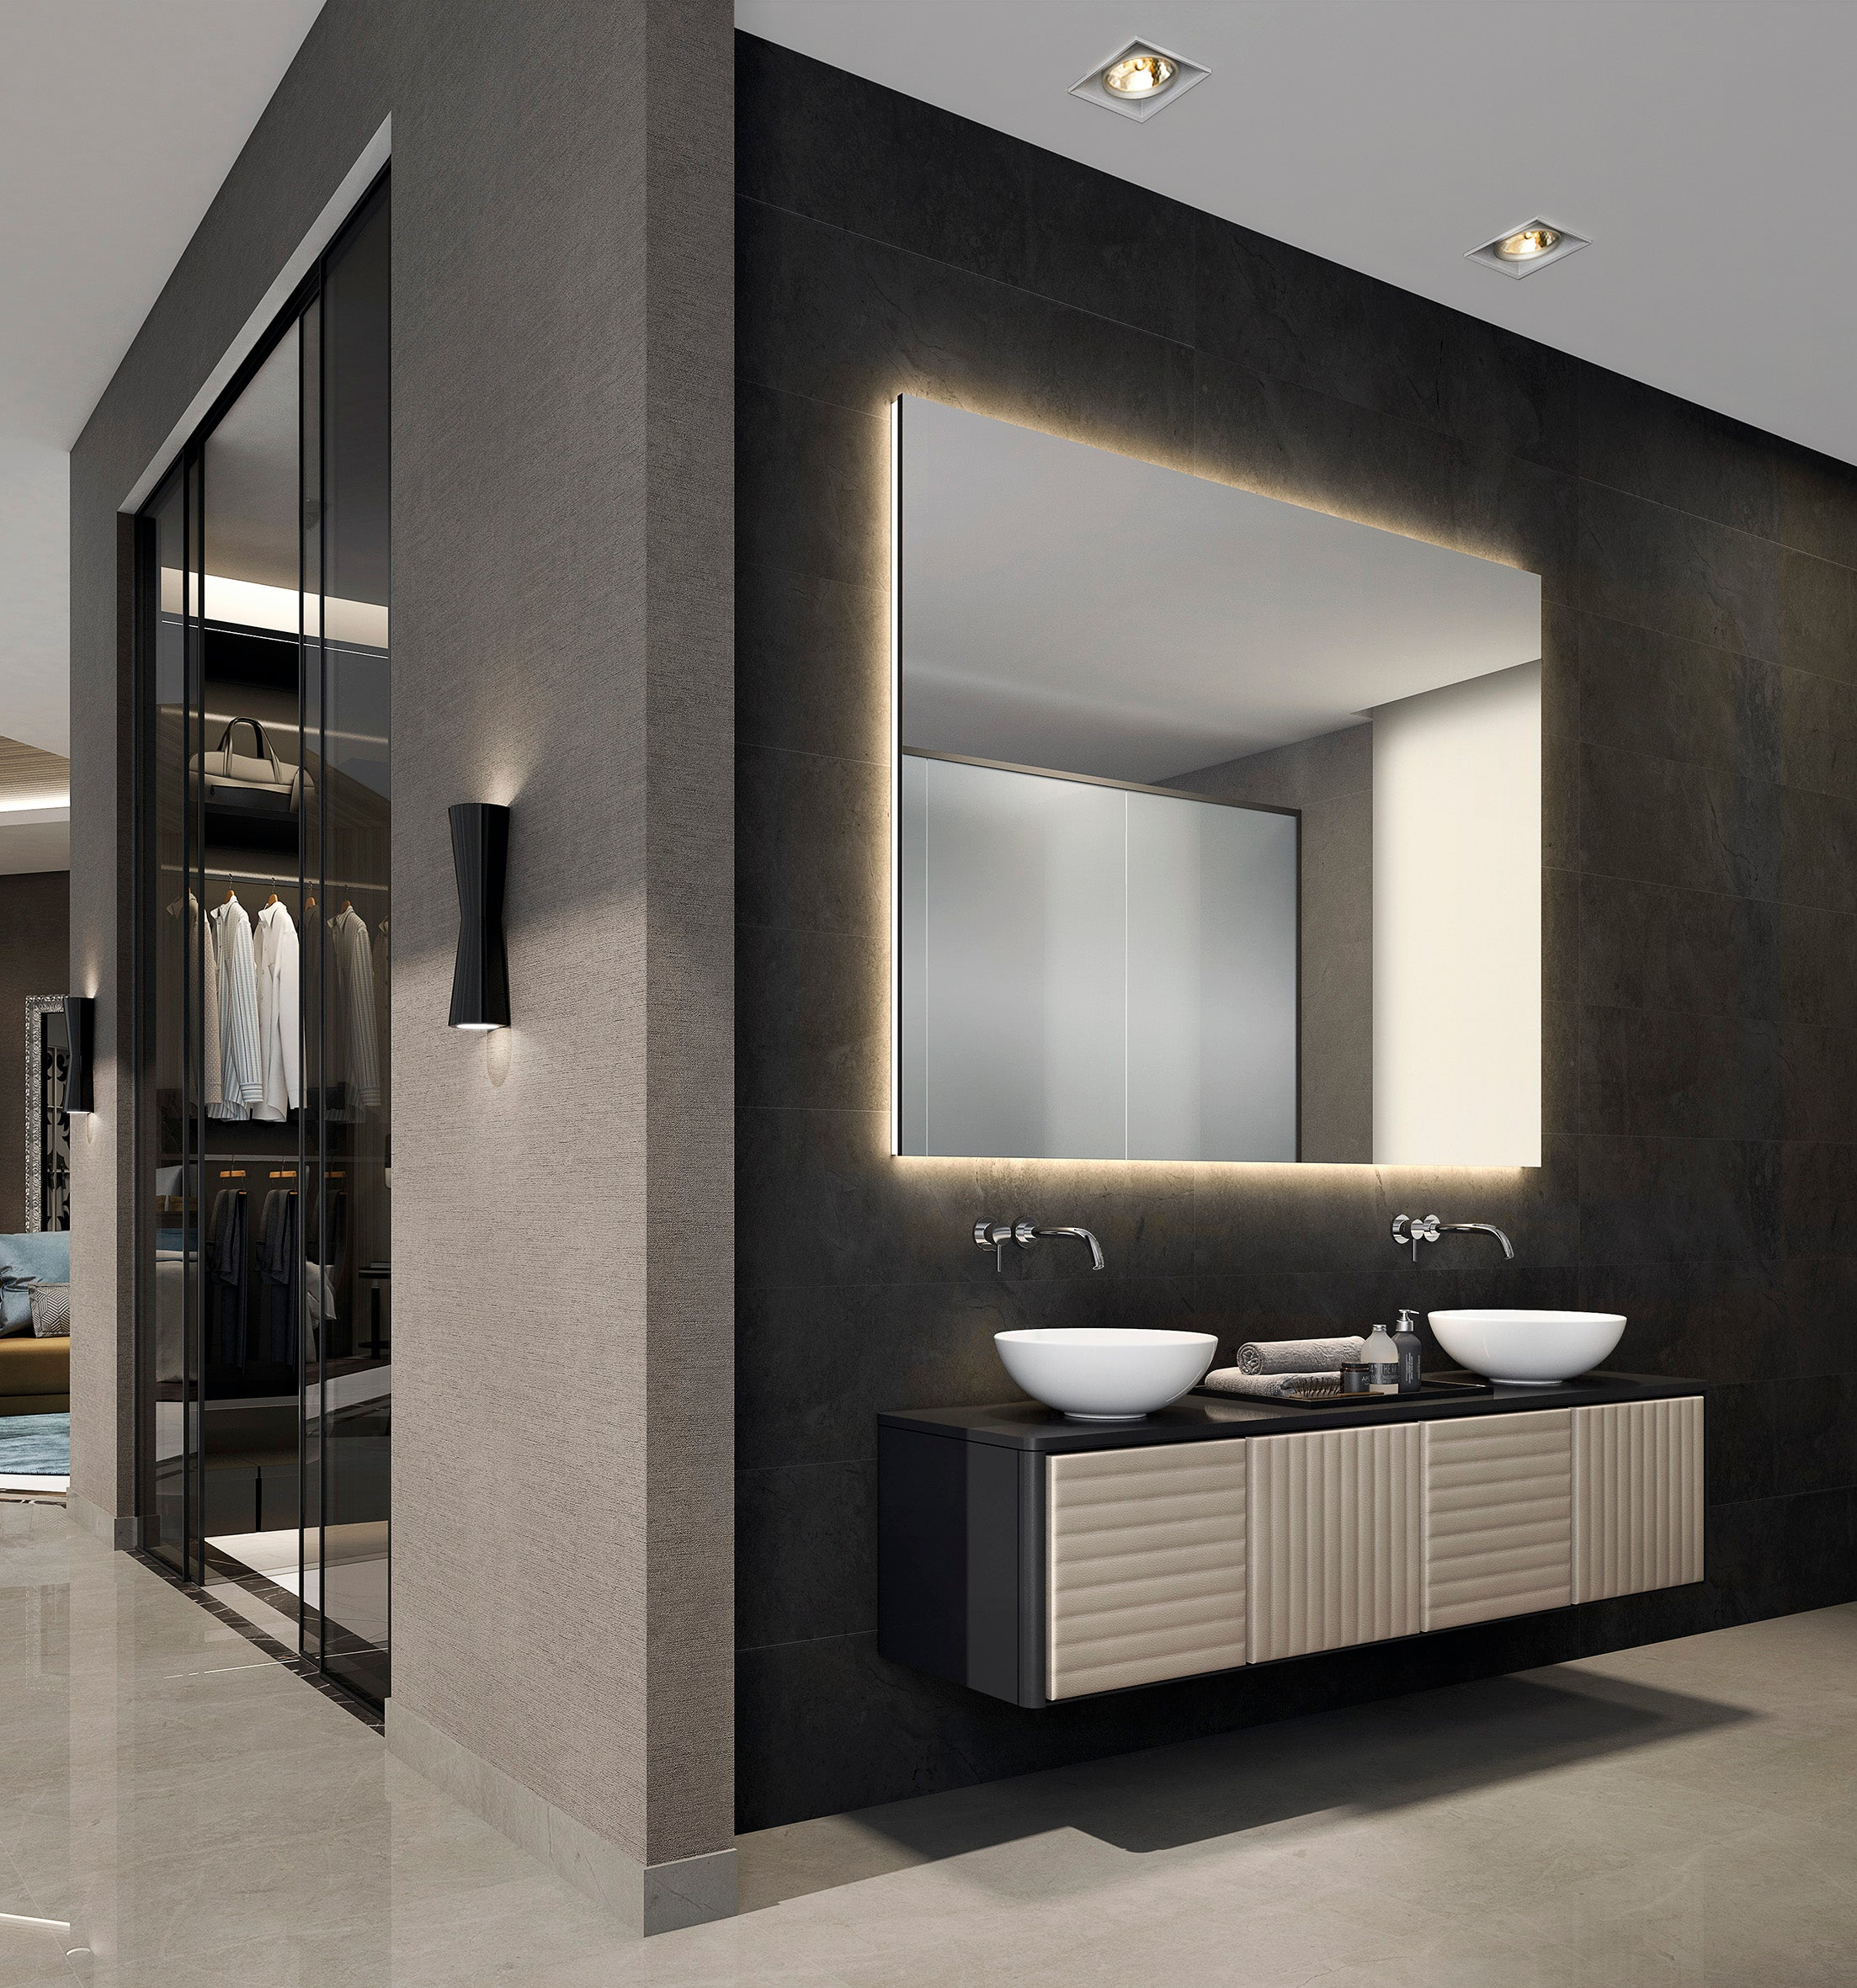 Boston Wall Mounted Bathroom Vanity 72 Lacquered And Leather Secretbathstore